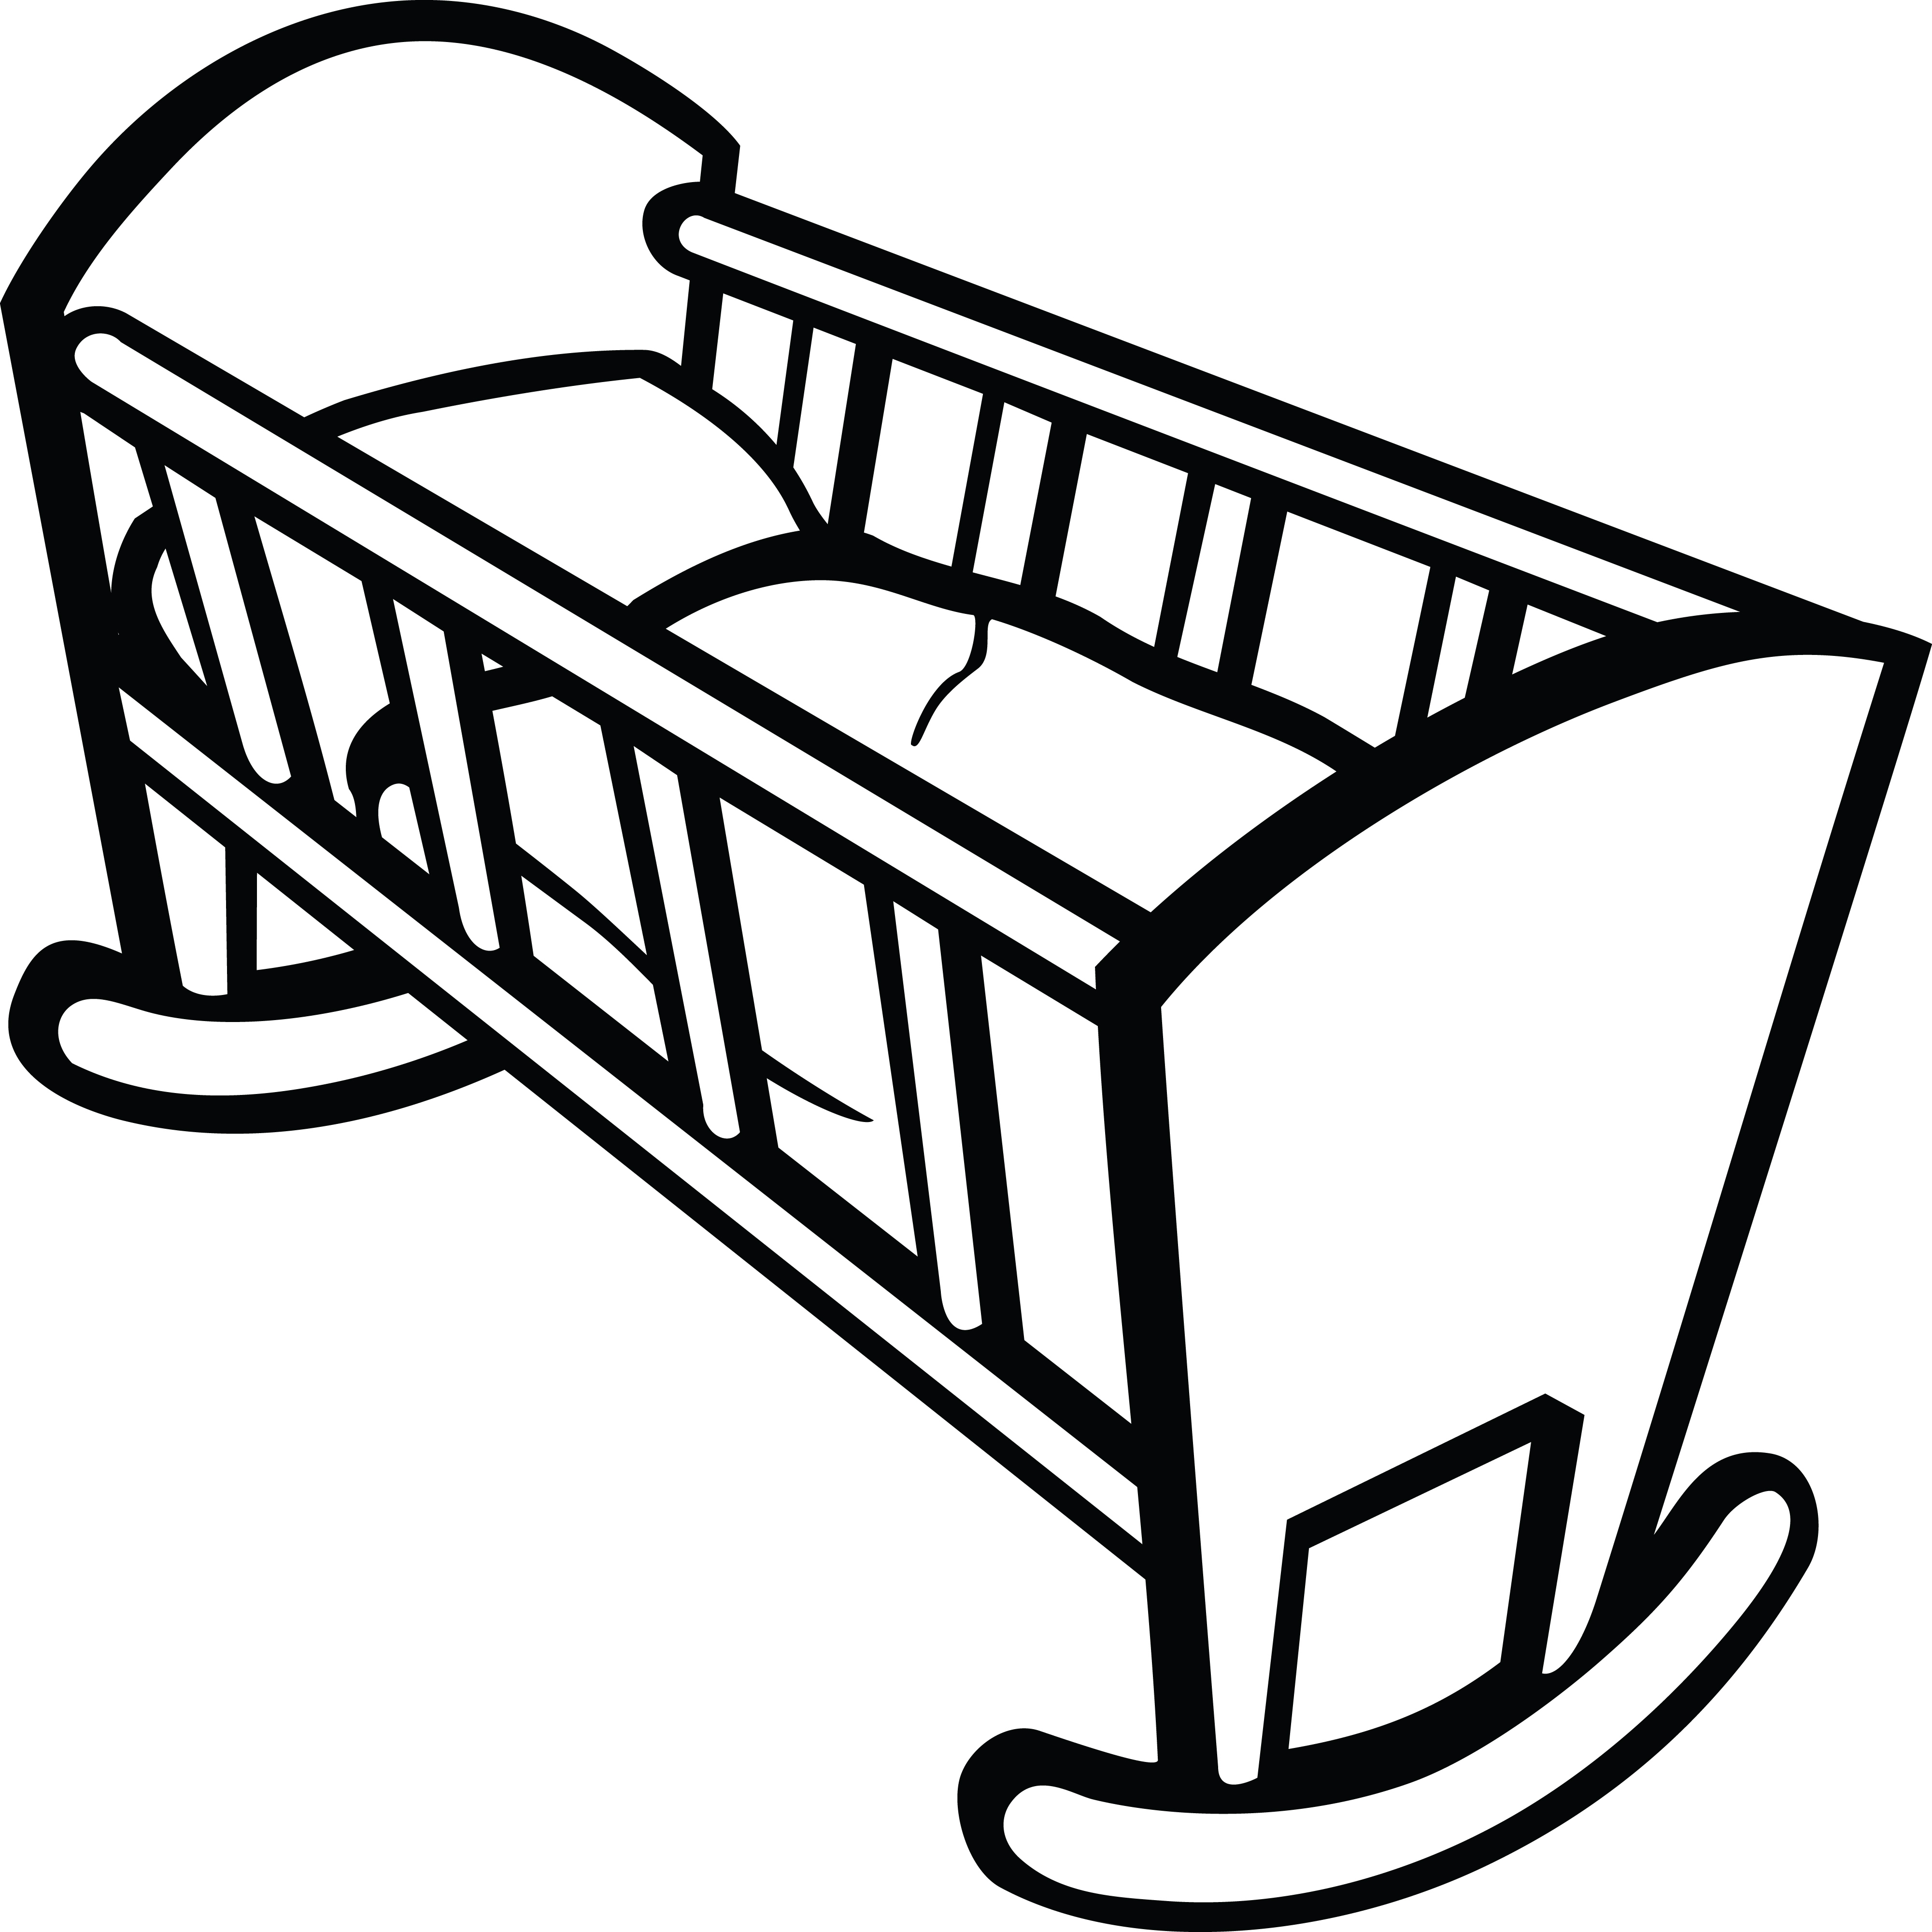 4000x4000 Clipart Of A Baby Crib Crib Cot, Filing And Free